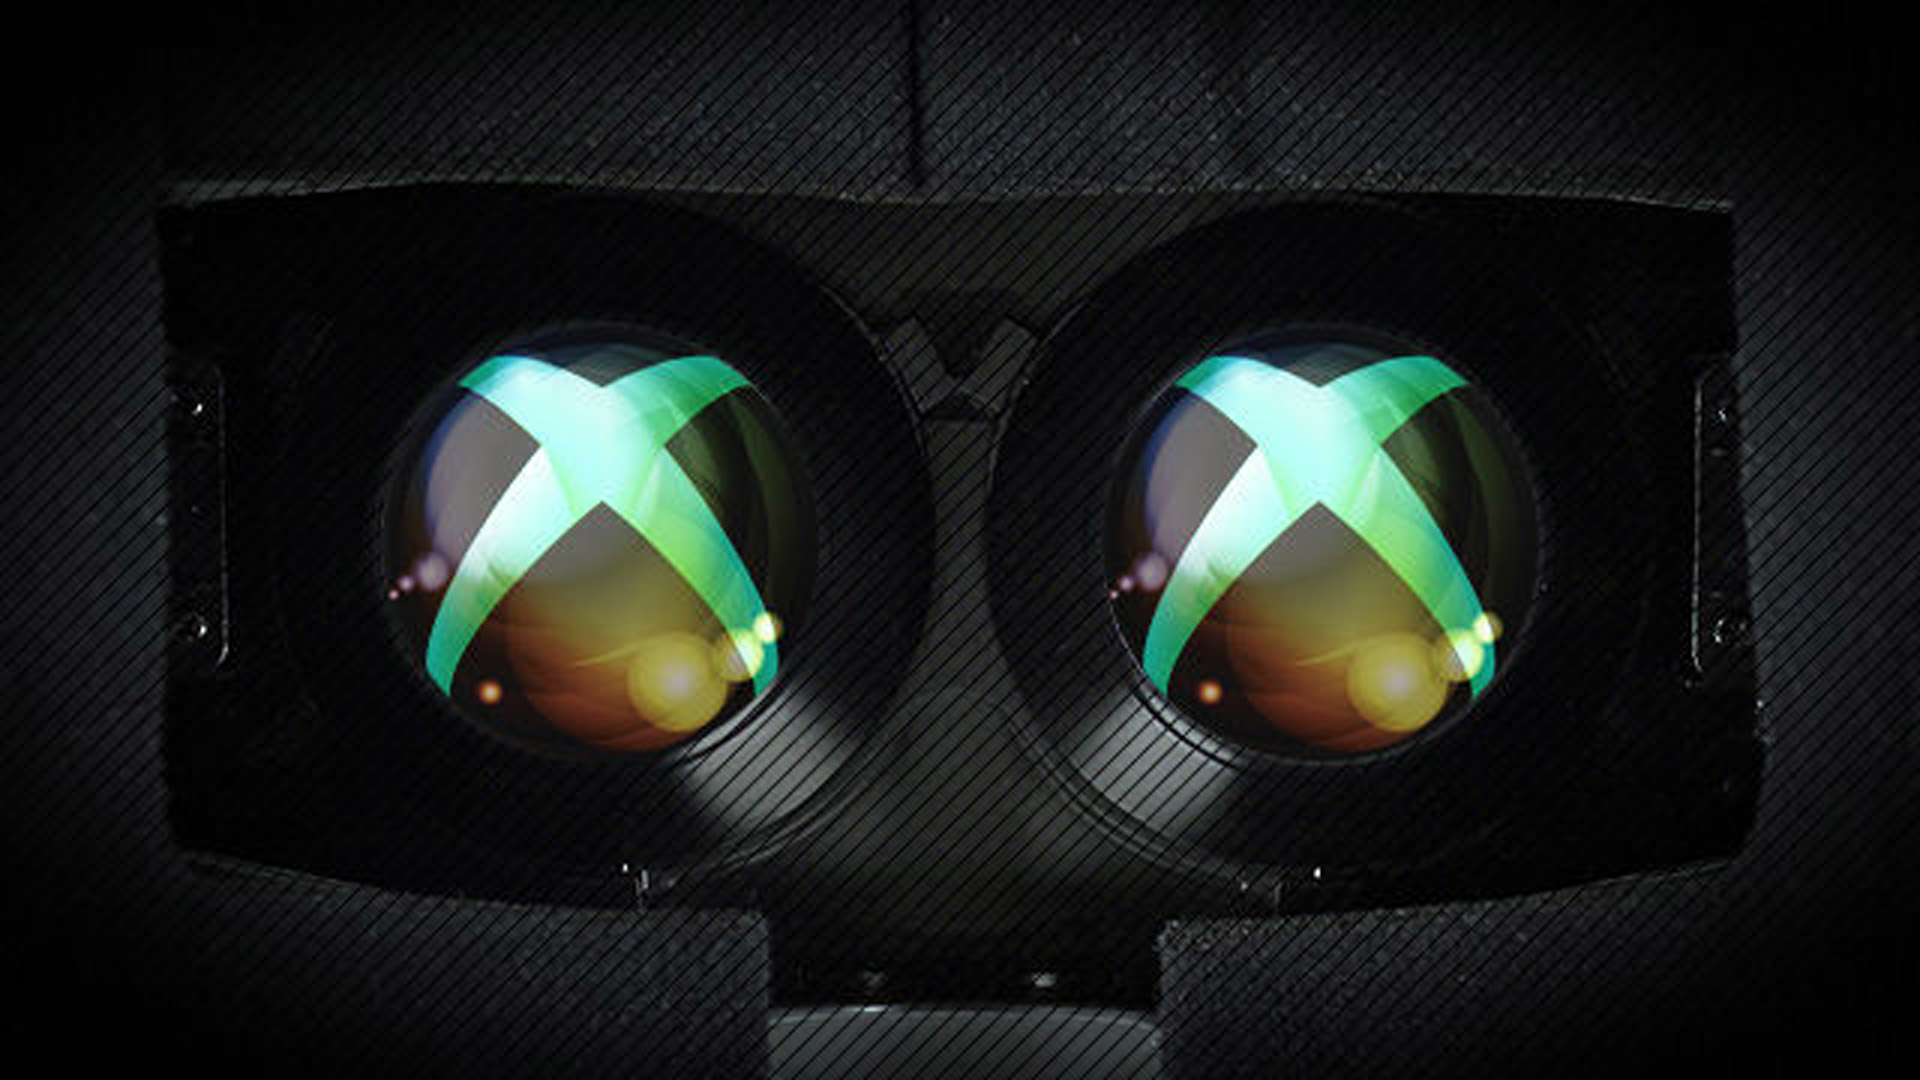 microsoft and the xbox one Microsoft has been rumored to be looking more deeply into mod support for xbox  one for quite a while, thanks to job listings we wrote about in.